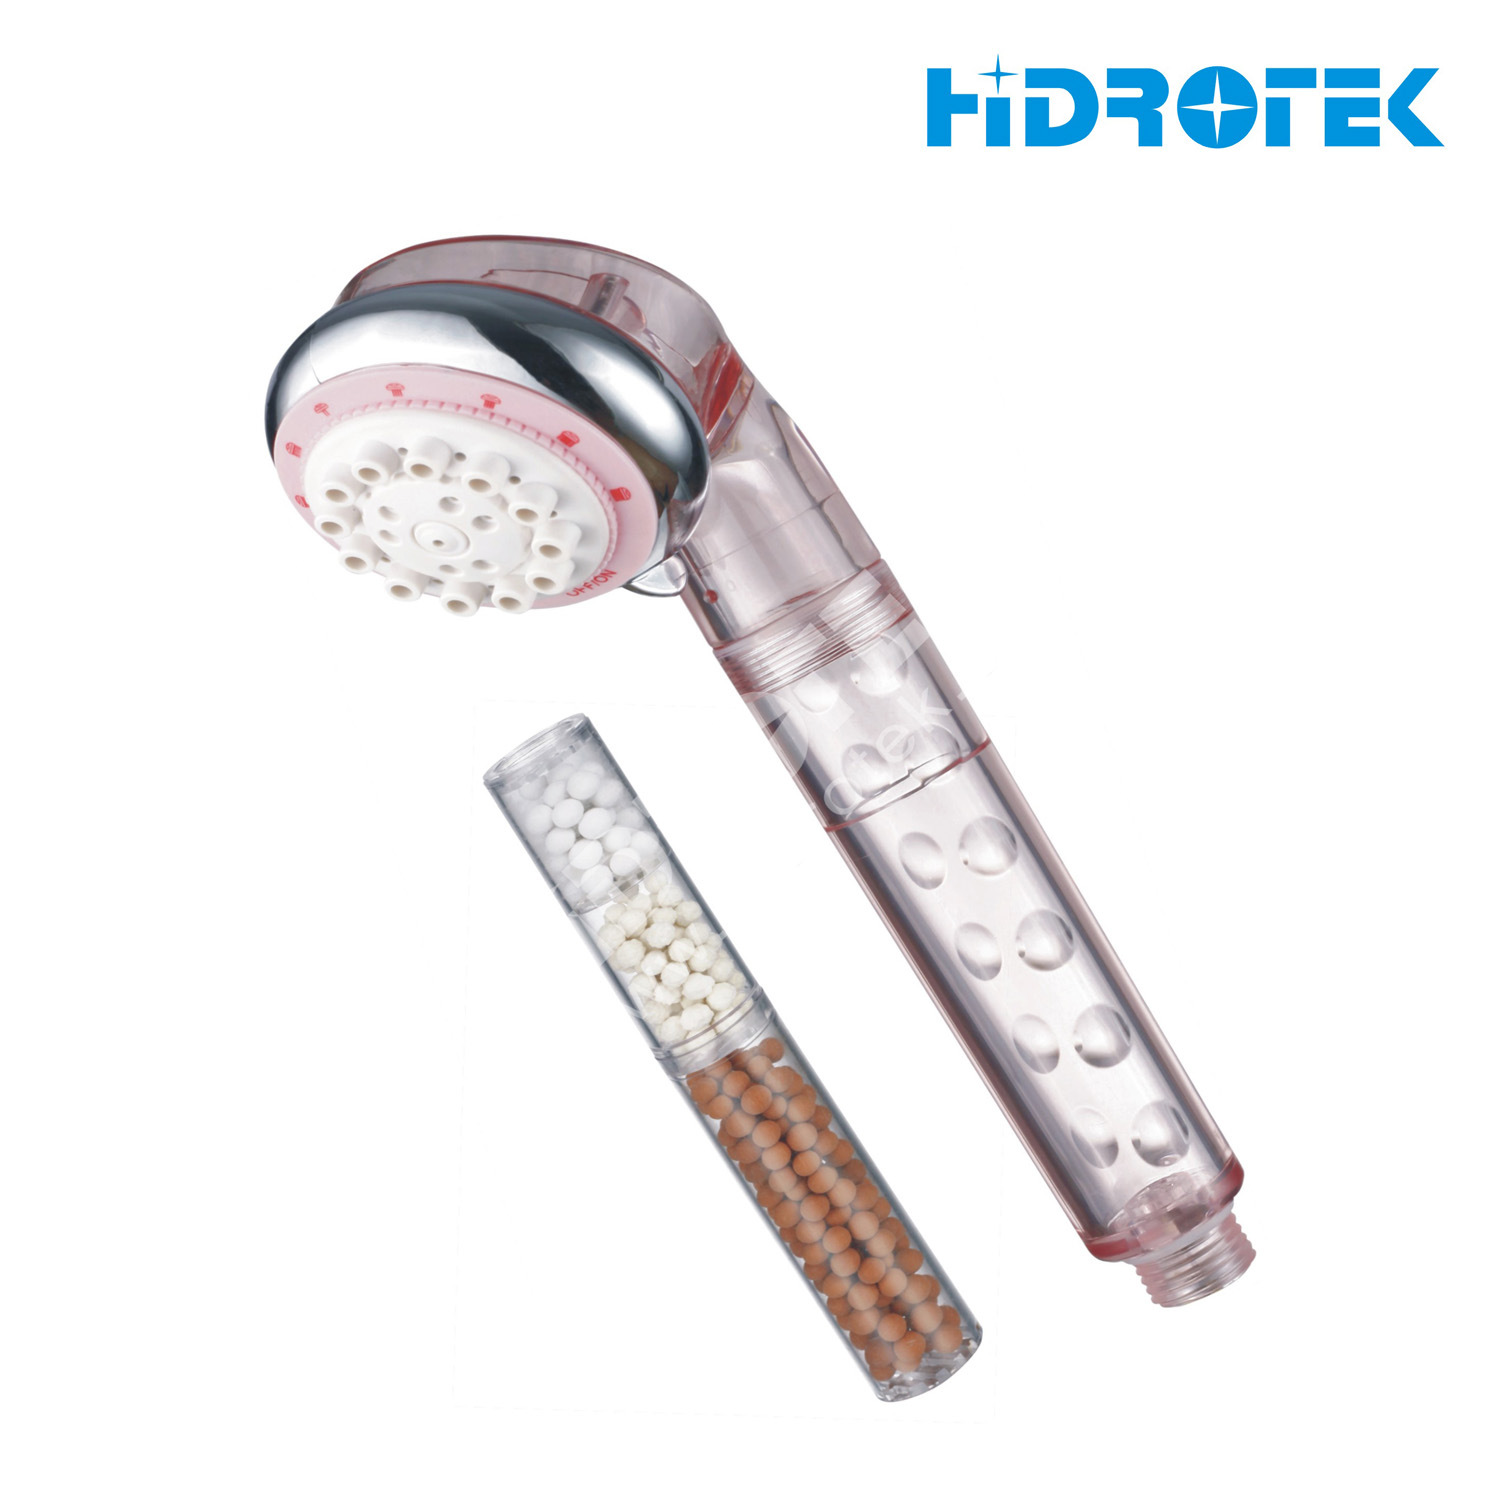 darren save filtech showerhead head darrenbloggie with shower from water filter